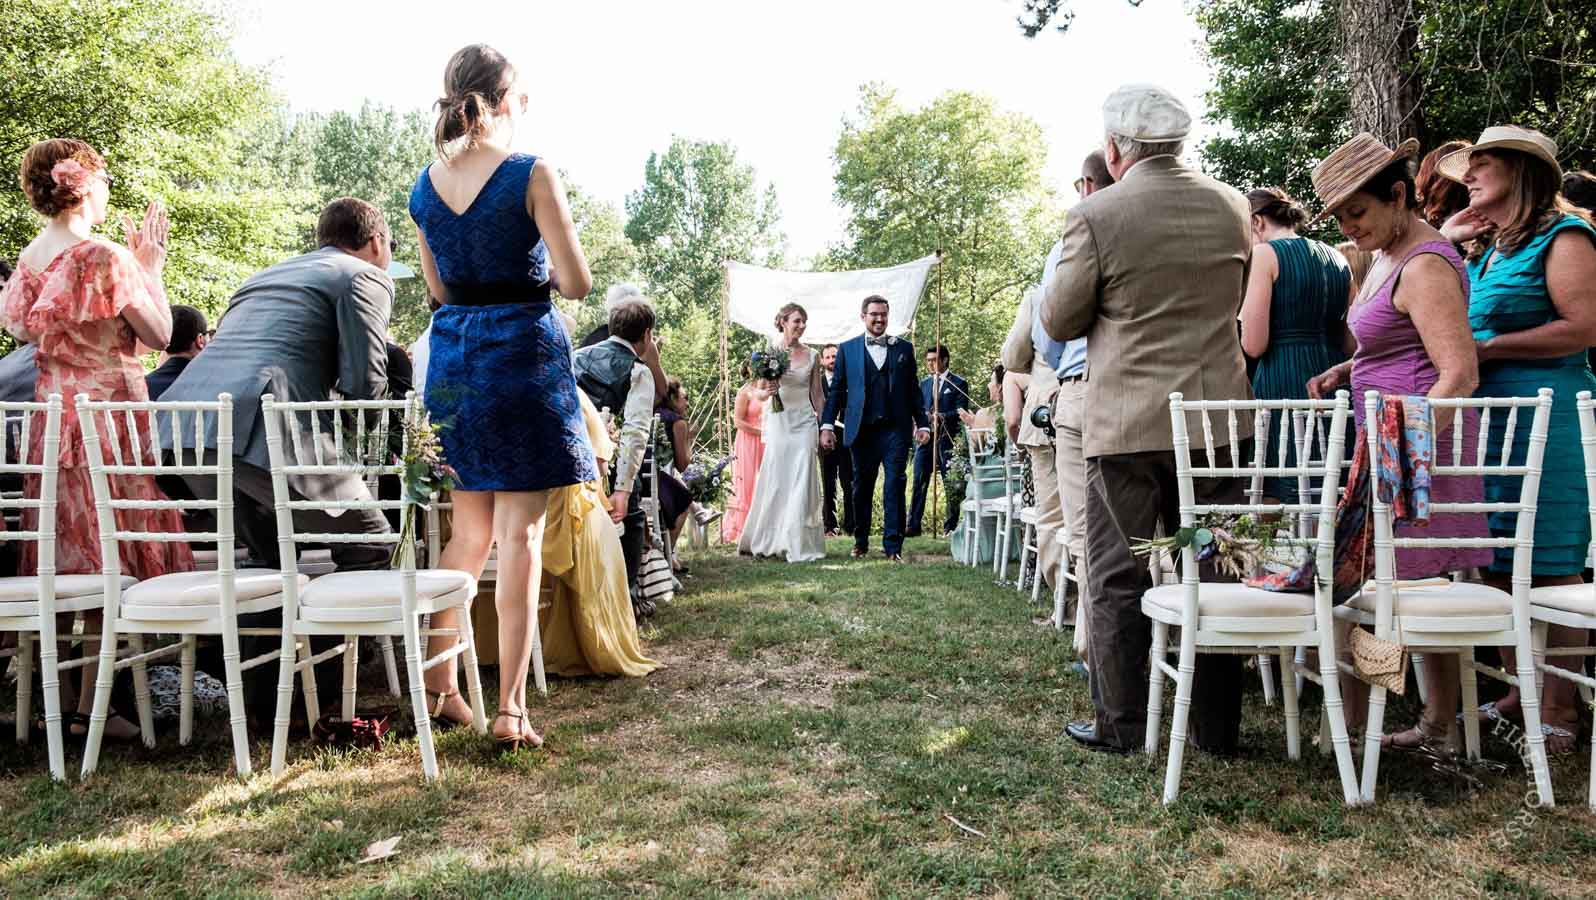 Lot-et-Garonne-Wedding-Photography-233